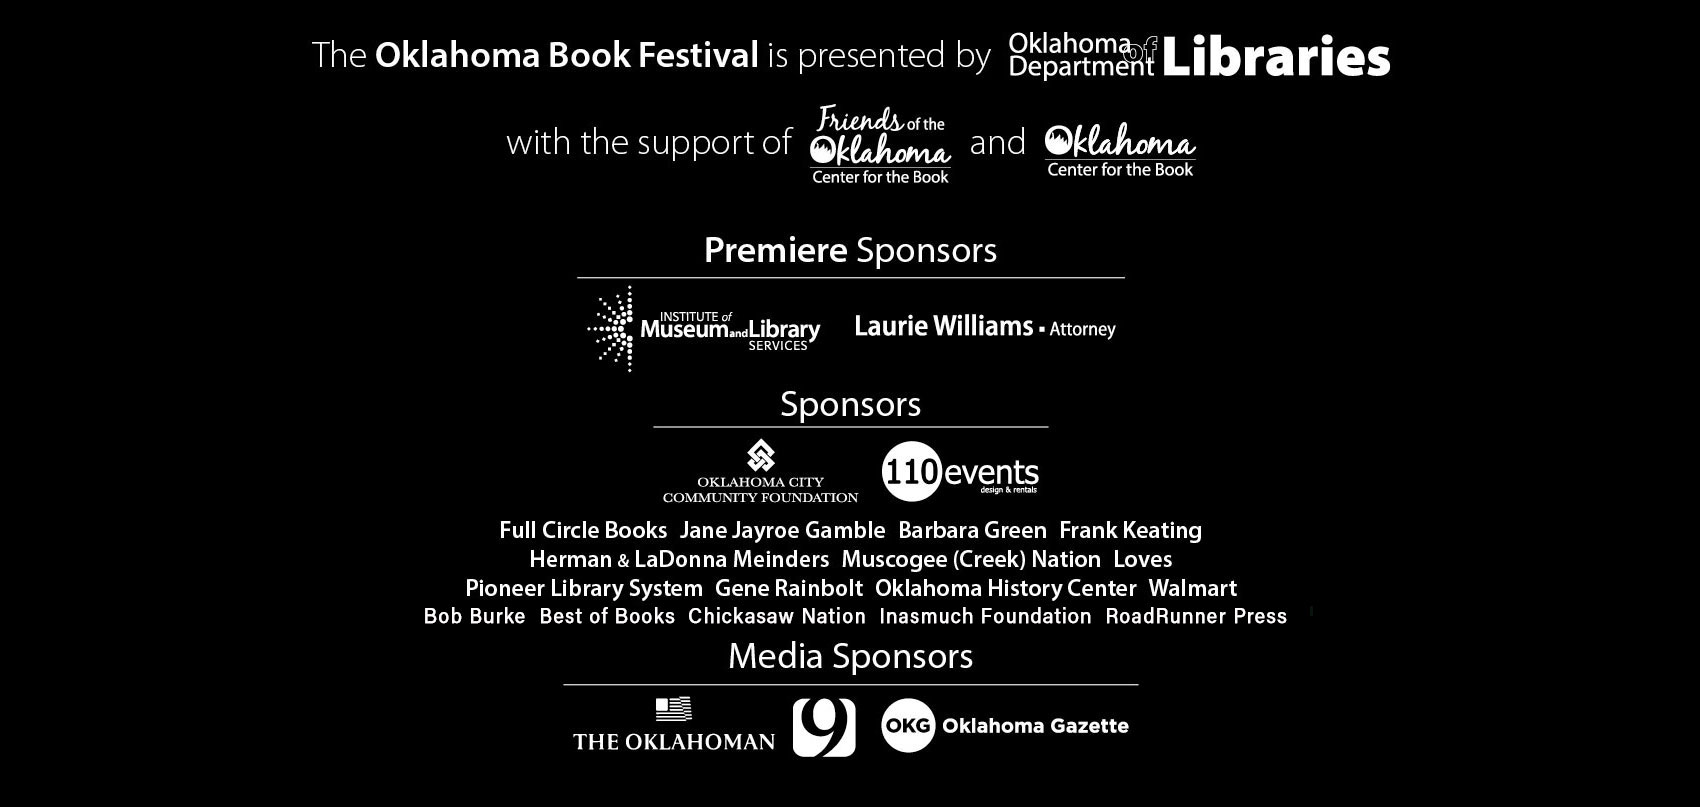 The Oklahoma Book Festival is presented by Oklahoma Department of Libraries with support of Friends of the Oklahoma Center for the Book and Oklahoma Center for the Book. Premier Sponsors include Institute of Museums and Libraries Services and Laurie Williams- Attorney. Additional Festival Sponsors are Oklahoma City Community Foundation, 110 Events, Jane Jayroe Gamble, Bob Burke, Barbara Green, Frank Keating, Herman & Ladonna Meinders, Full Circle Books, Best of Books, Chickasaw Nation, Muskogee Creek Nation, Love's, Pioneer Library System, Gene Rainbolt, Inasmuch Foundation, Oklahoma History Center, RoadRunner Press, and Walmart. Media Sponsors include News 9, The Oklahoman, and Oklahoma Gazette.